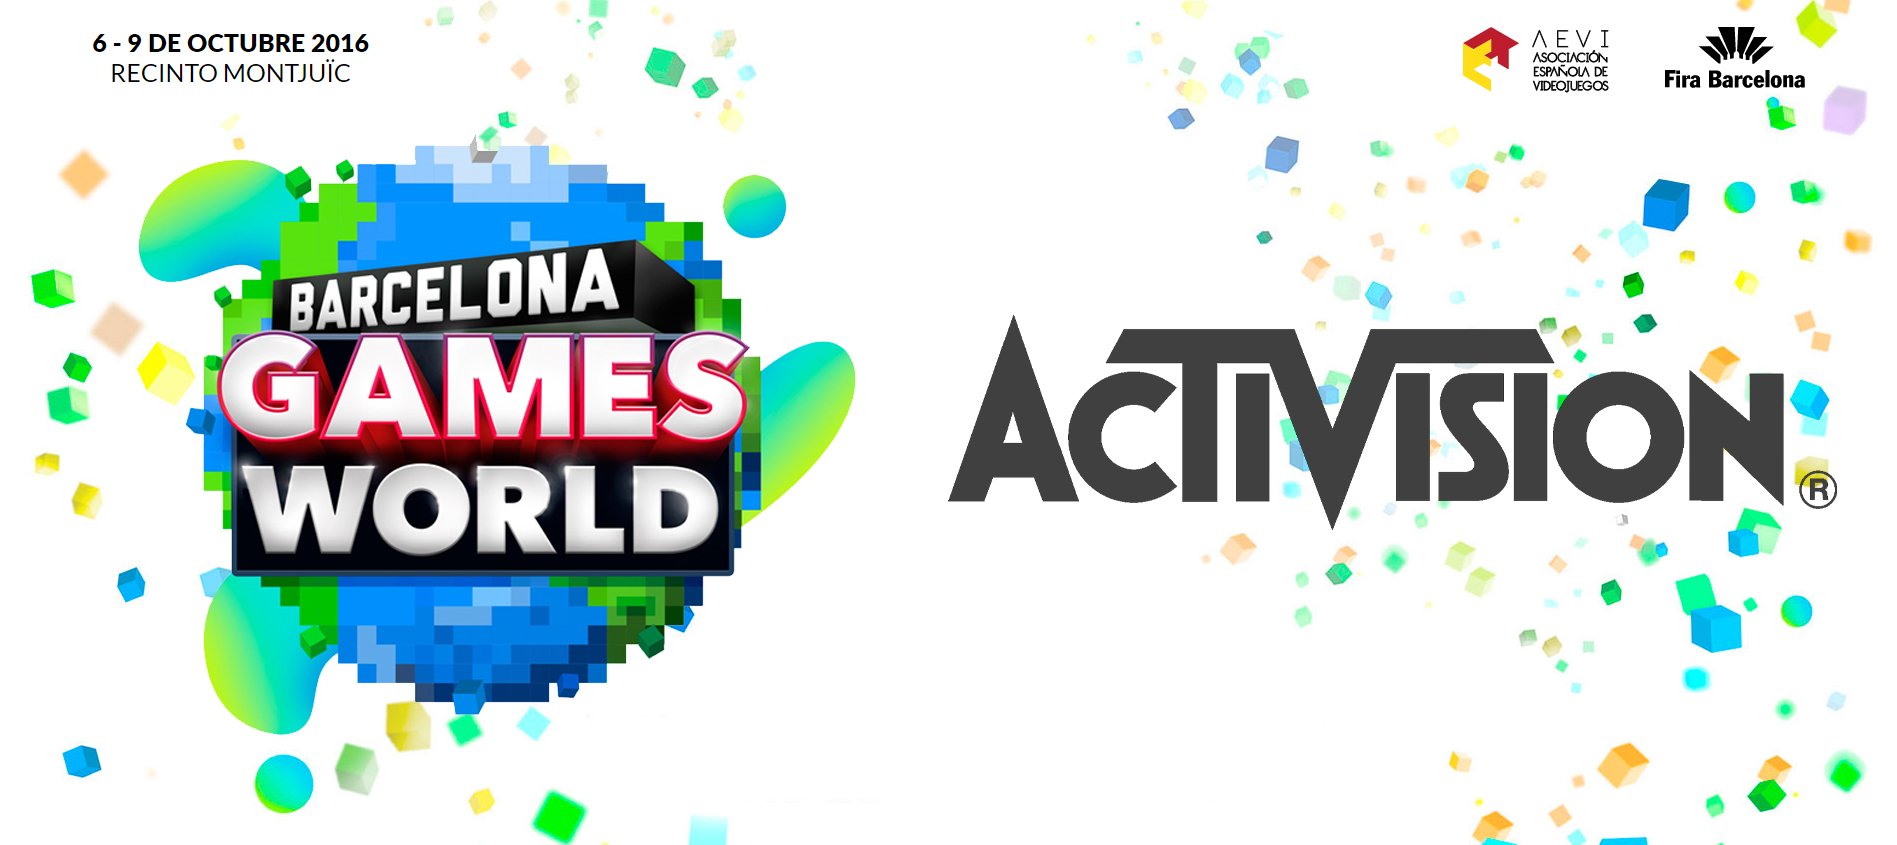 Barcelona Games World - Activision